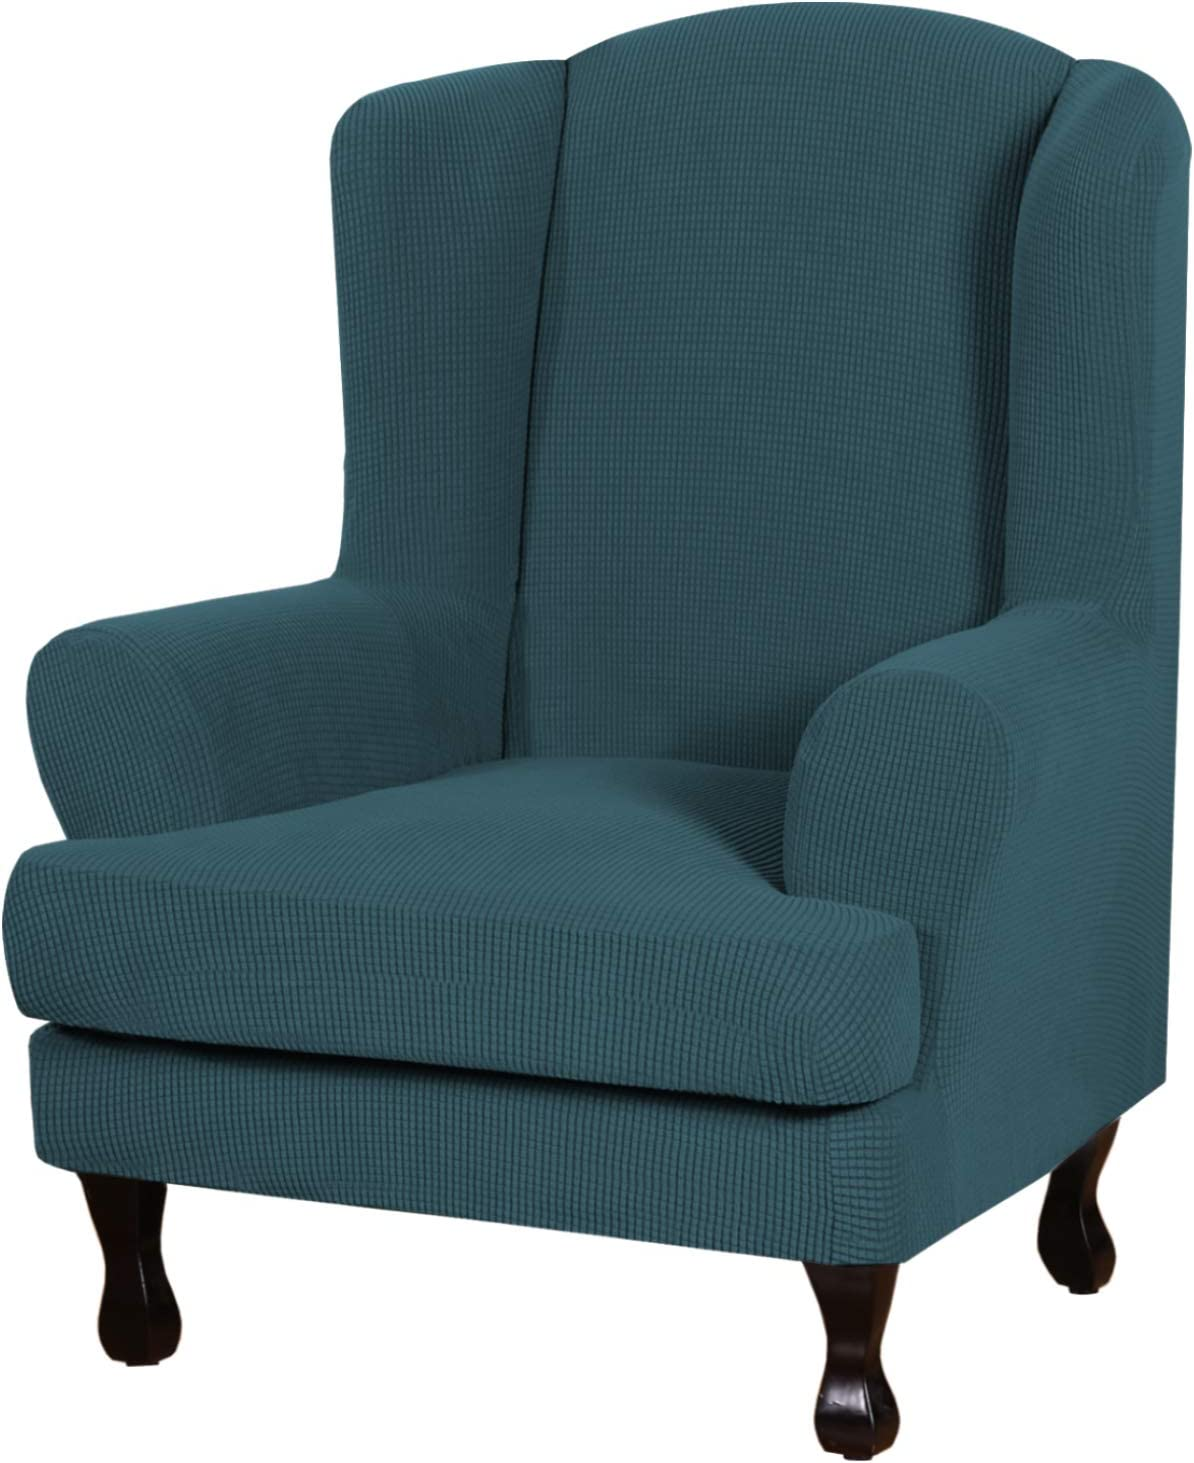 H.VERSAILTEX 2 Piece Wingback Chair Slipcover Wing Chair Sofa Cover Arm Chair Furniture Cover Slipcover High Stretch Modern Spandex Knitted Jacquard Fabric Stay in Place Machine Washable, Deep Teal